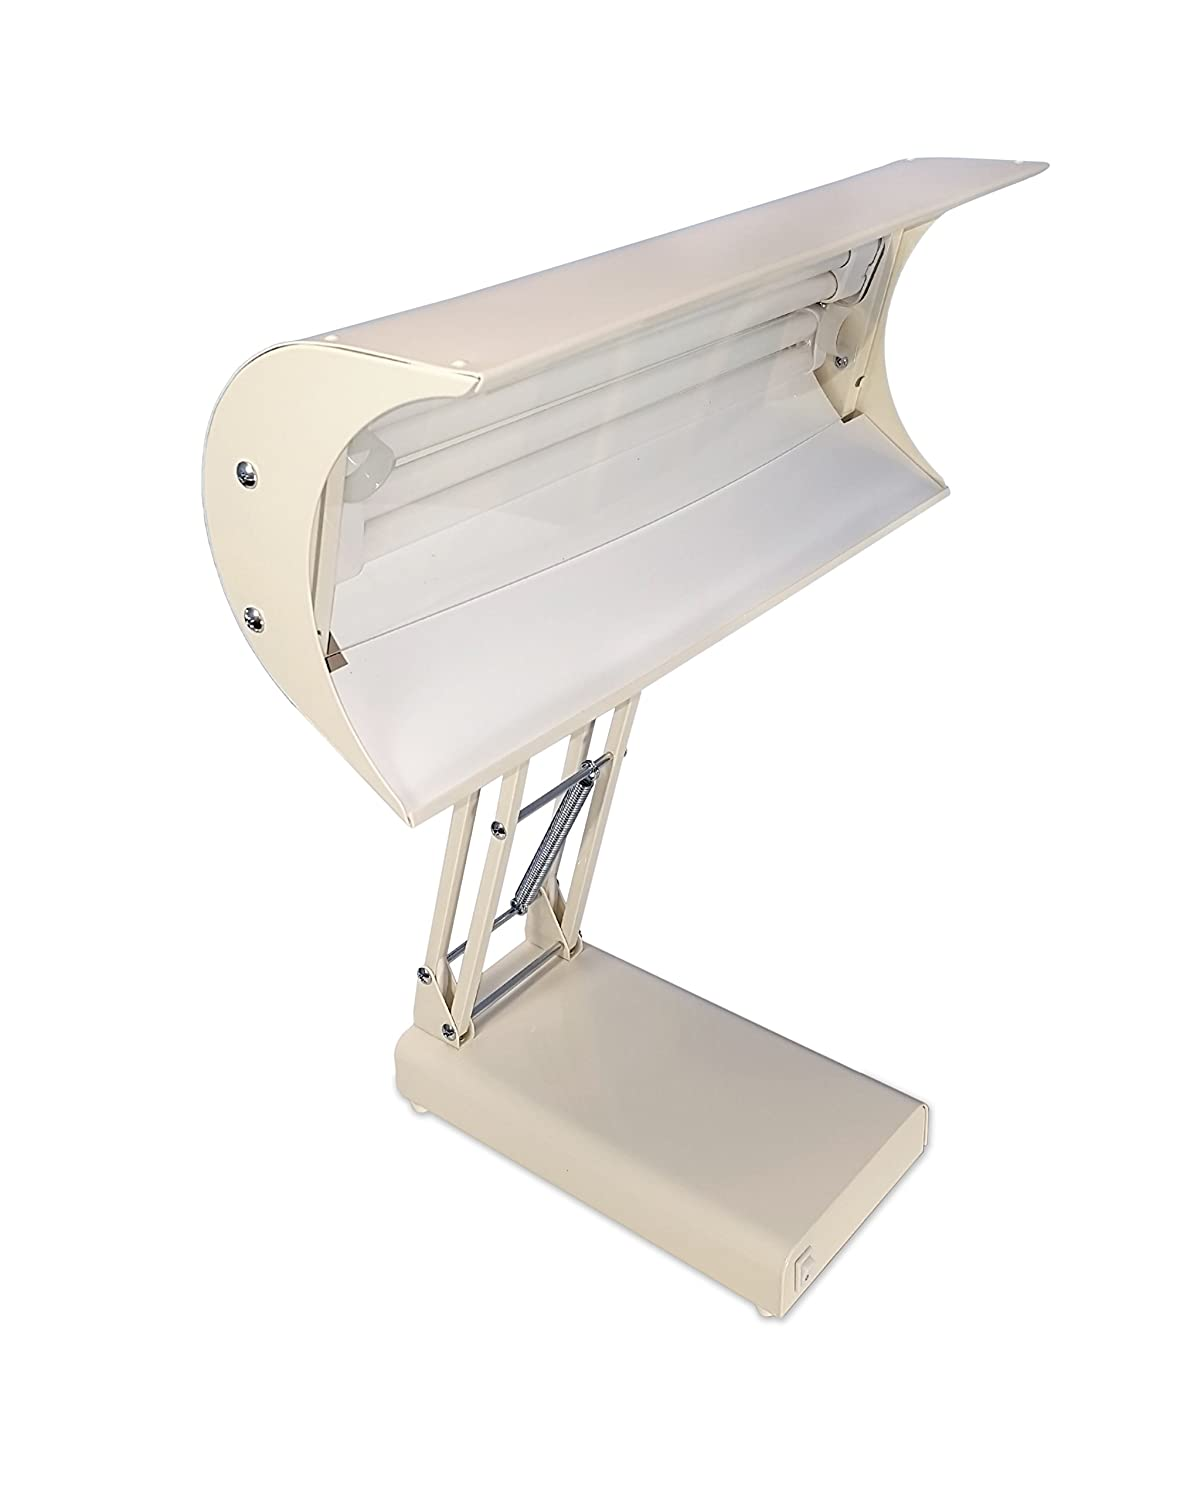 Northern Light 10,000 Lux Bright Light Therapy Desk Lamp, Beige